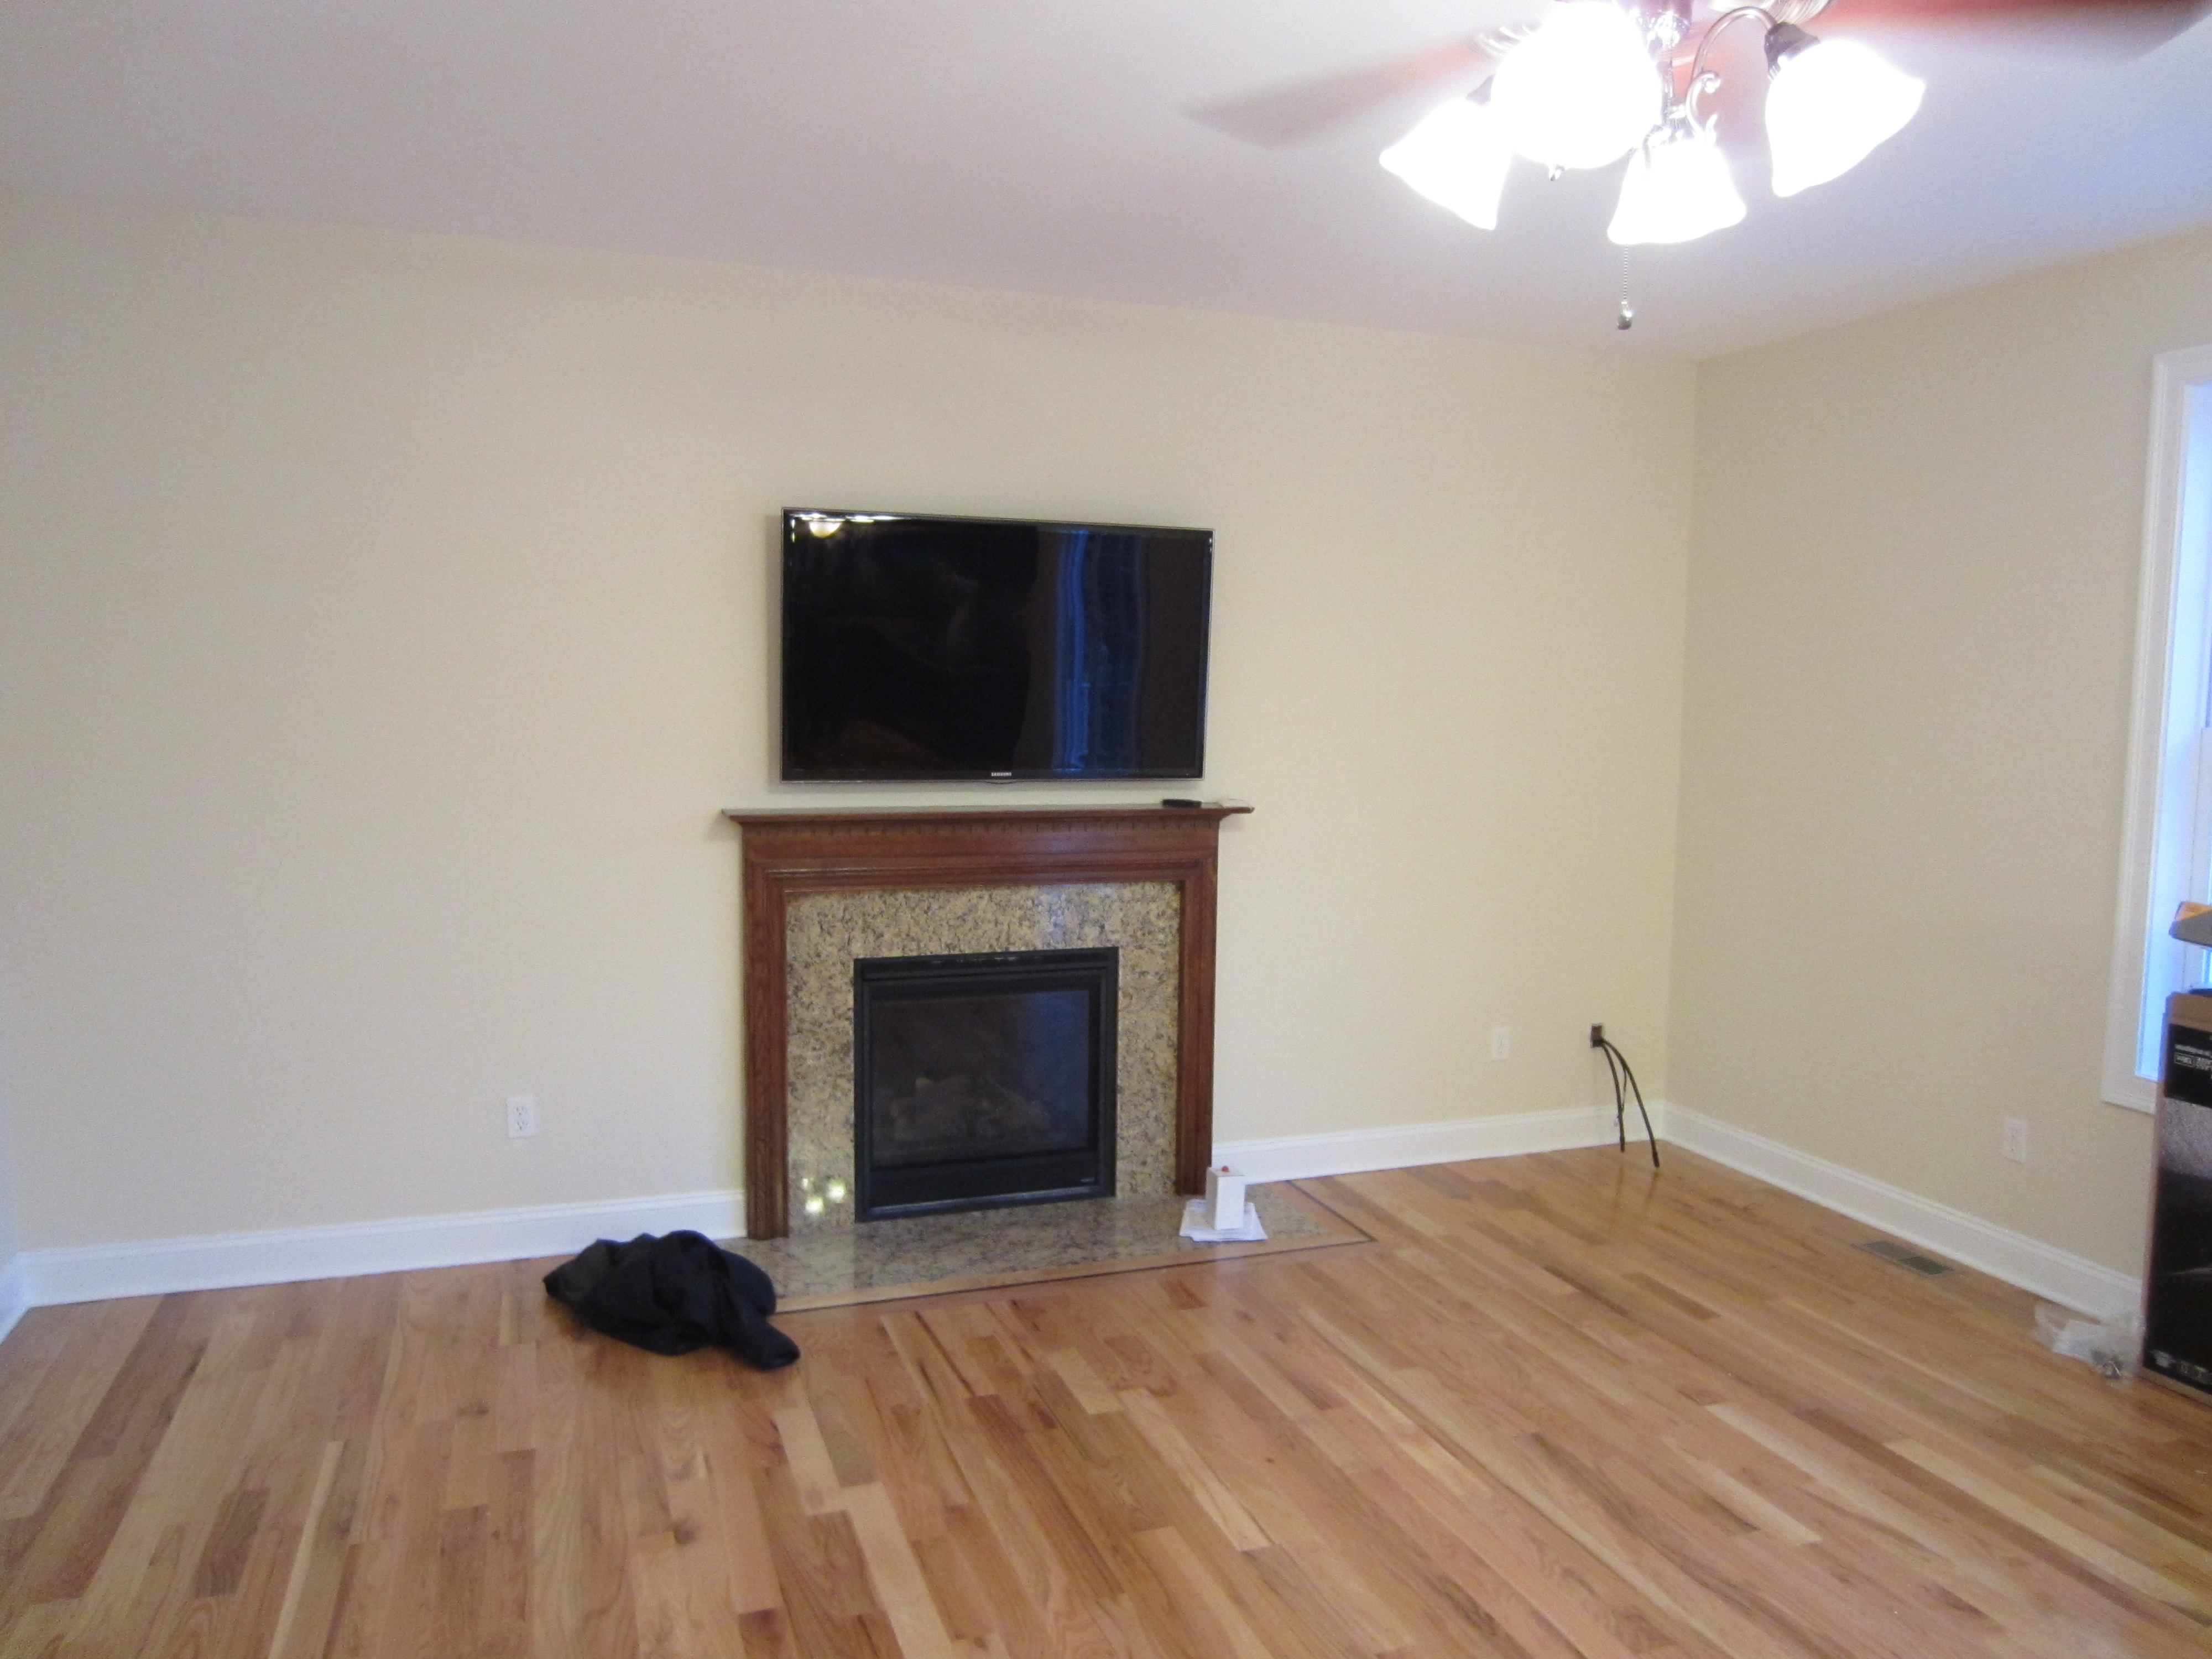 clinton ct mount tv above fireplace richey group llc audio video experts. Black Bedroom Furniture Sets. Home Design Ideas